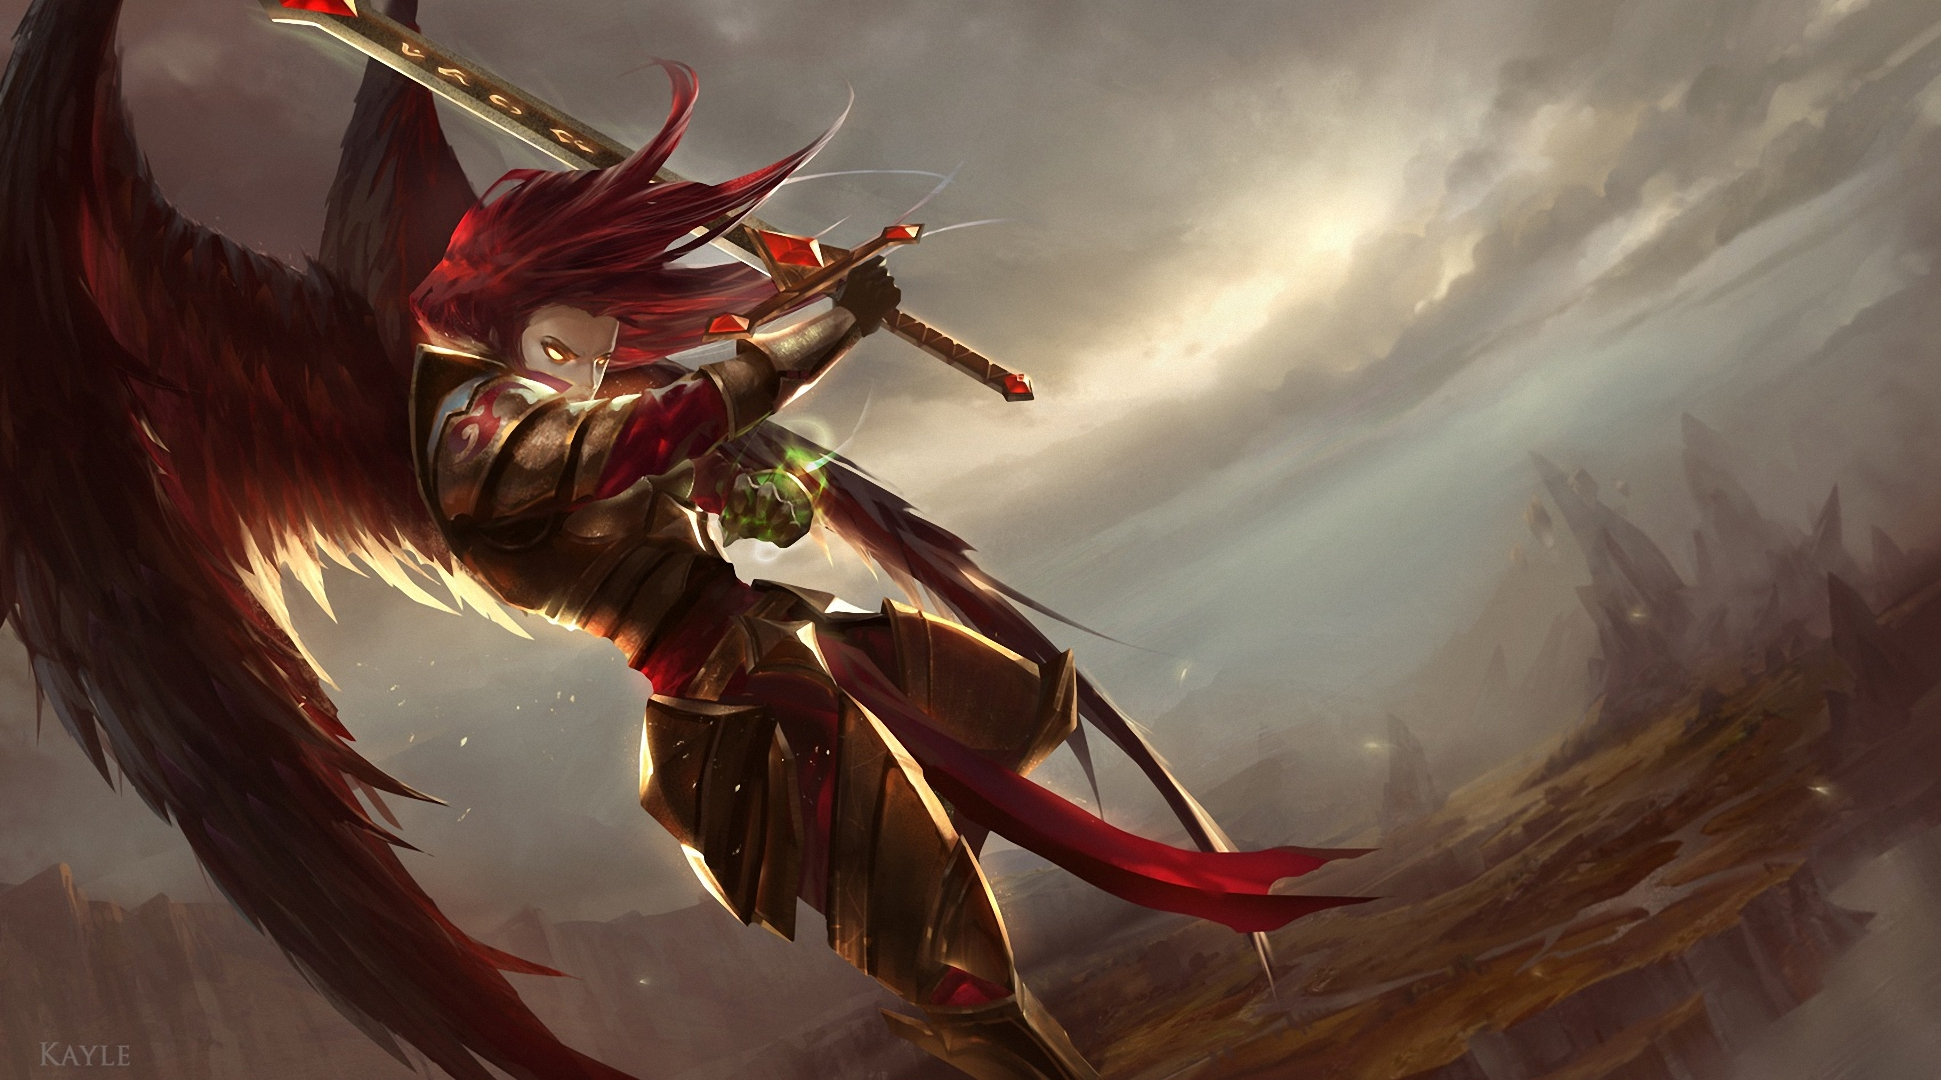 Wallpaper League Of Legends Kayle Desktop Picture Hd Photo